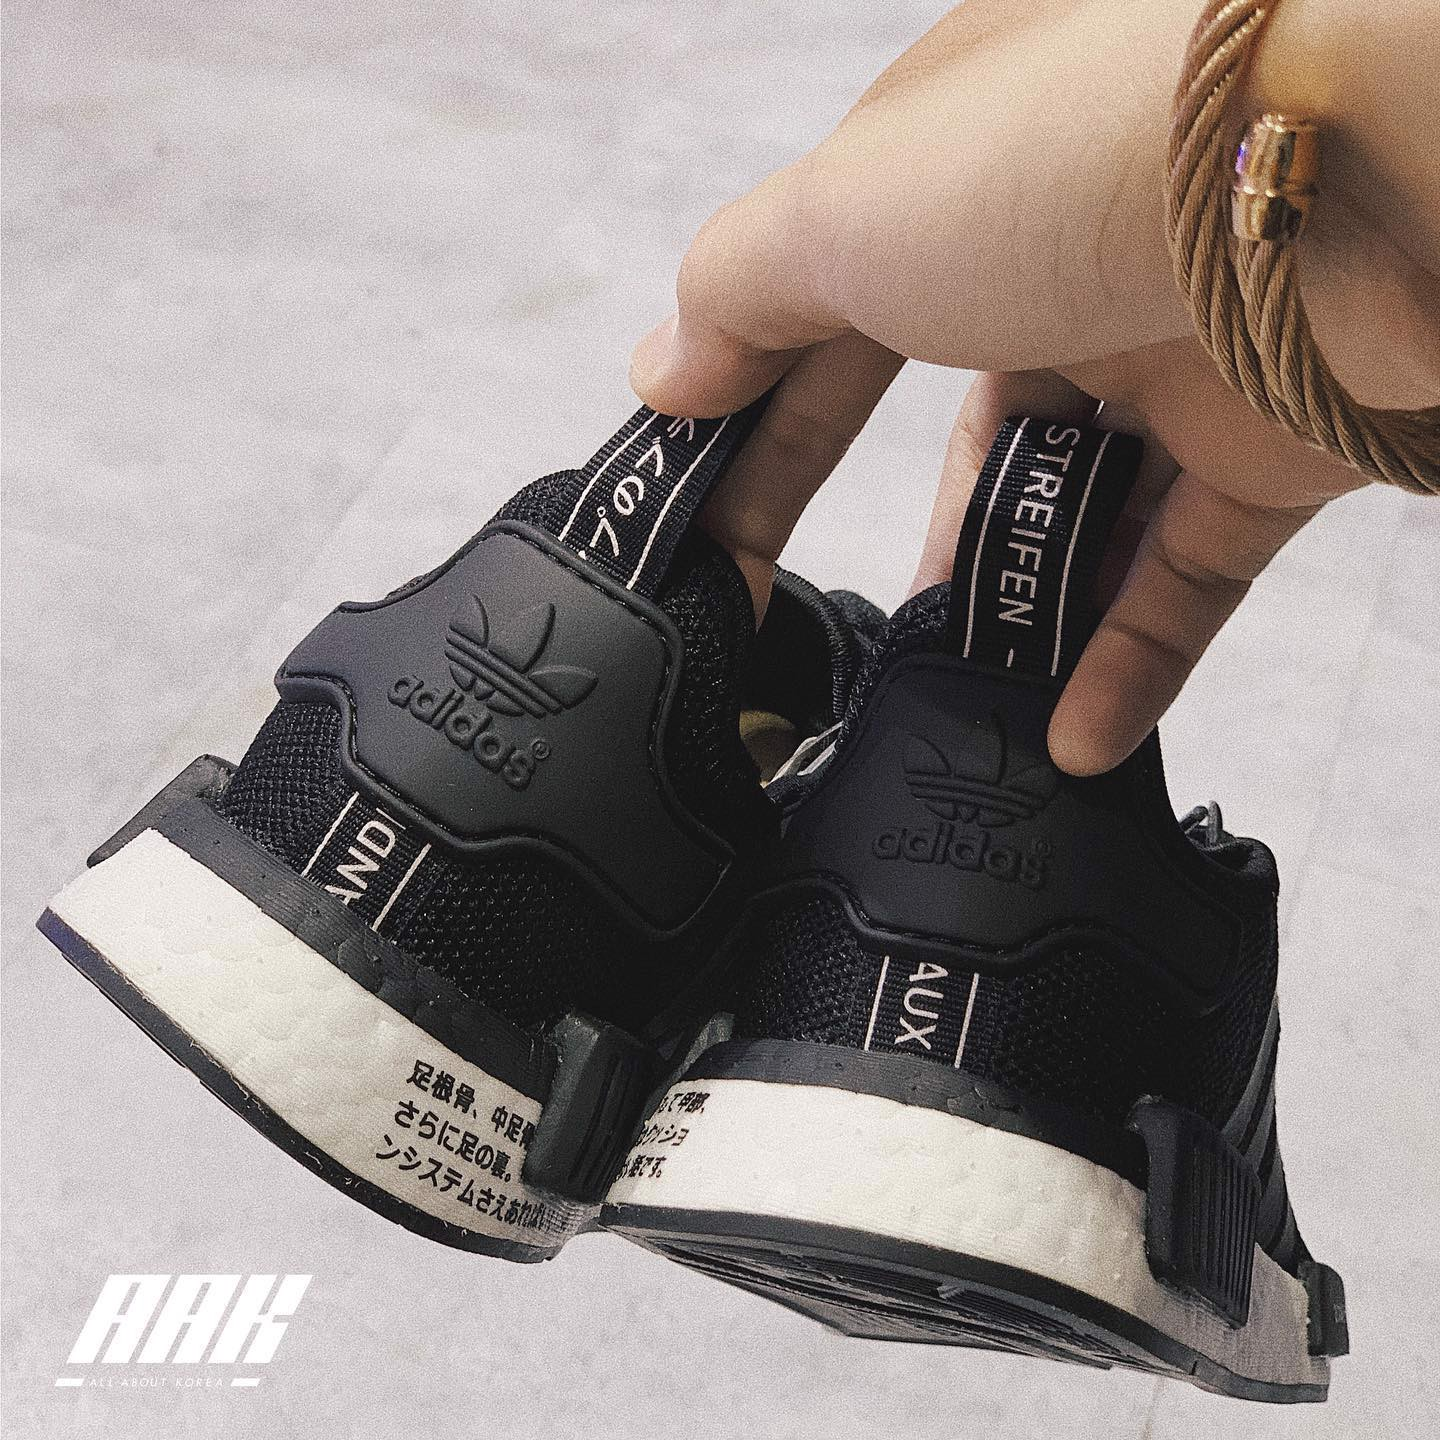 NMD R1 JAPAN - FULL BOX